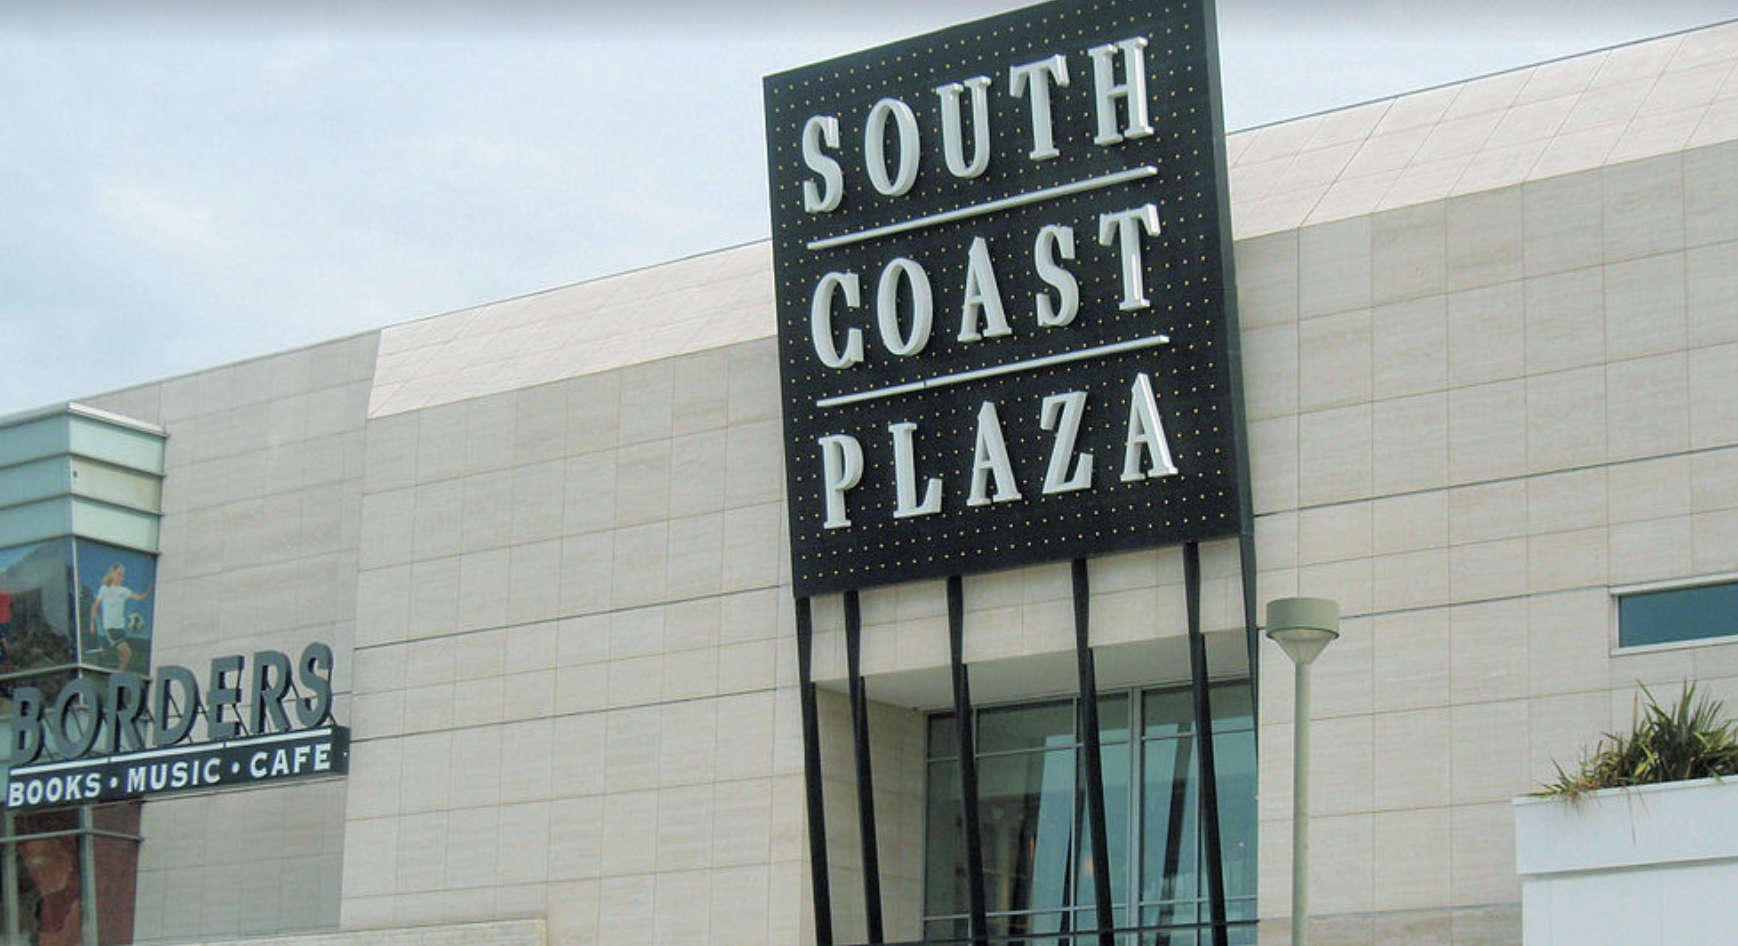 Then South Coast Plaza sign is seen in a Google Maps Street View image.